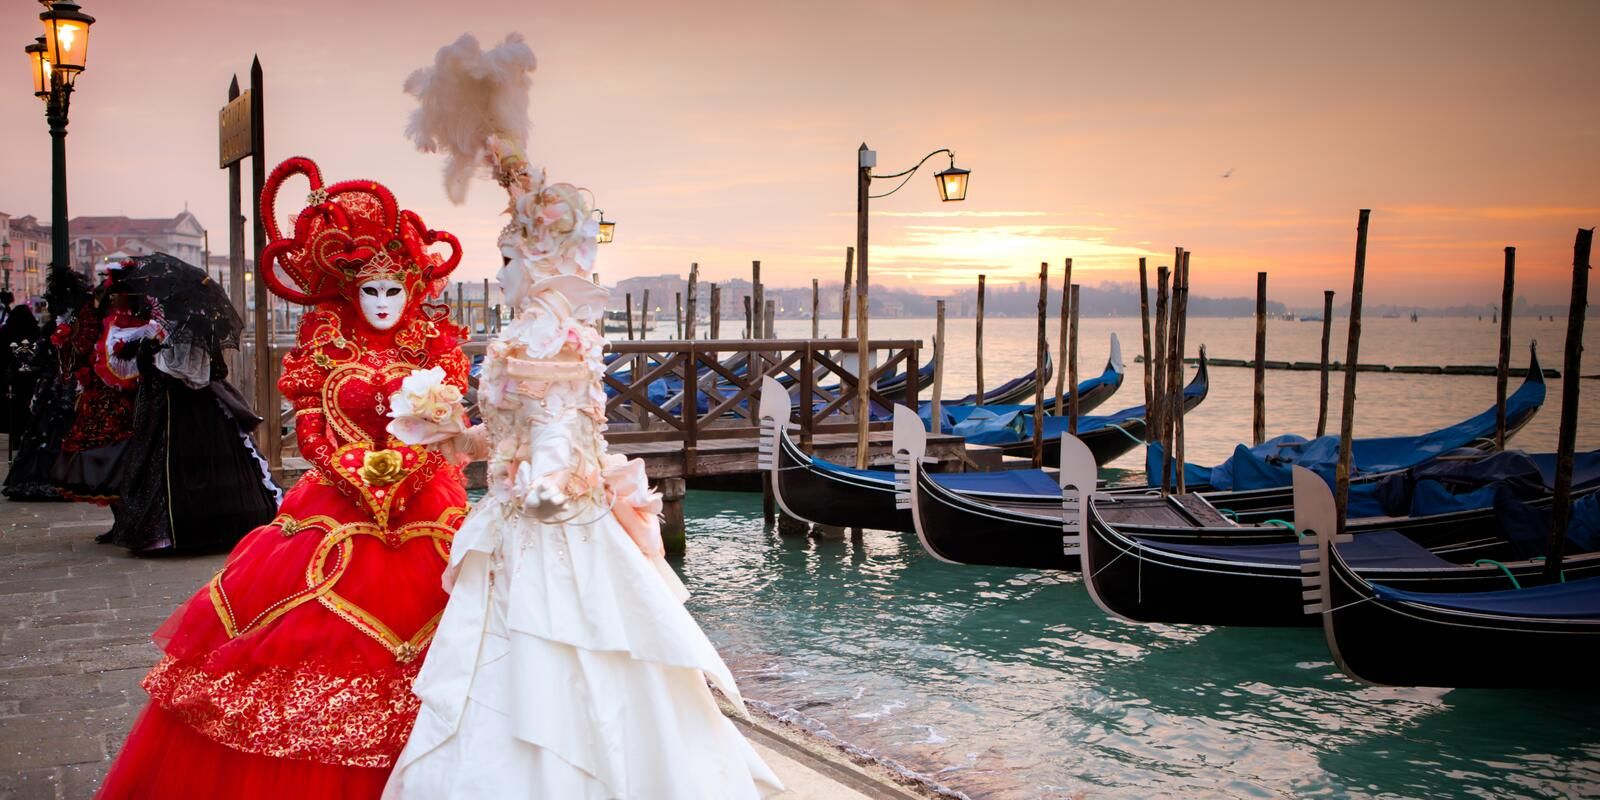 Venice. Carnival on a sailing boat